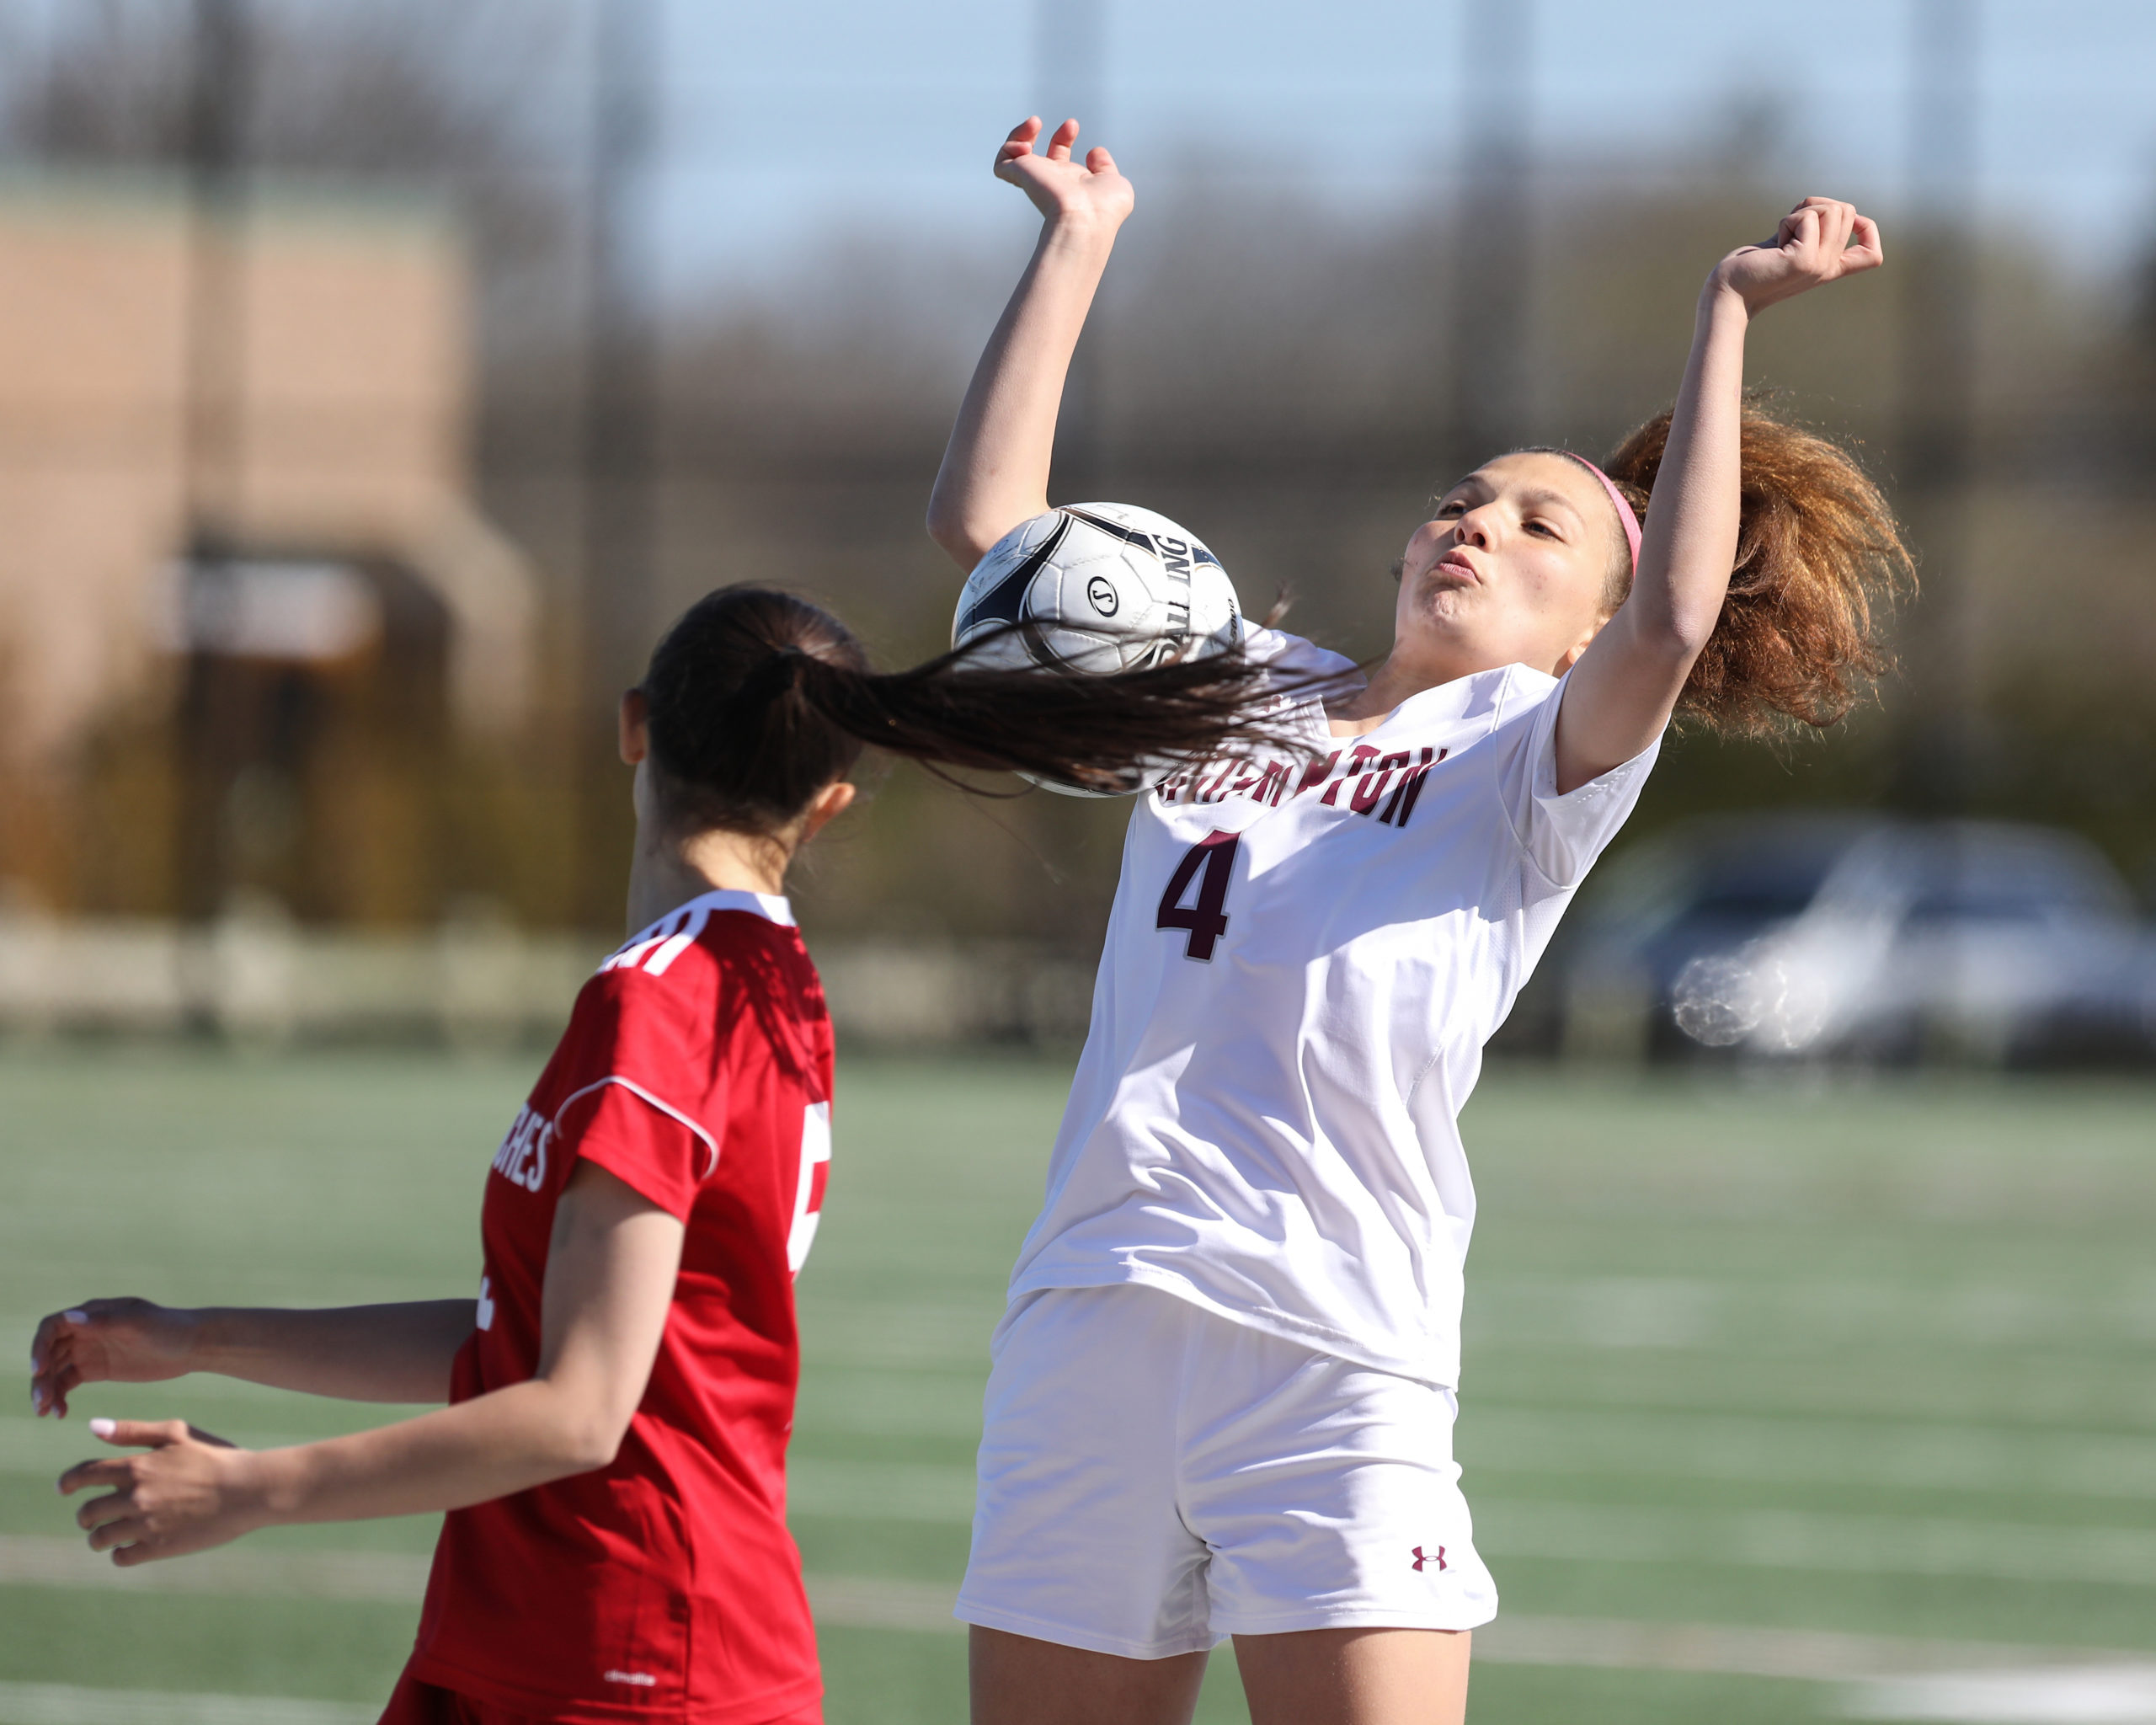 Southampton junior Gabriella Arnold uses her body to keep the ball in play.